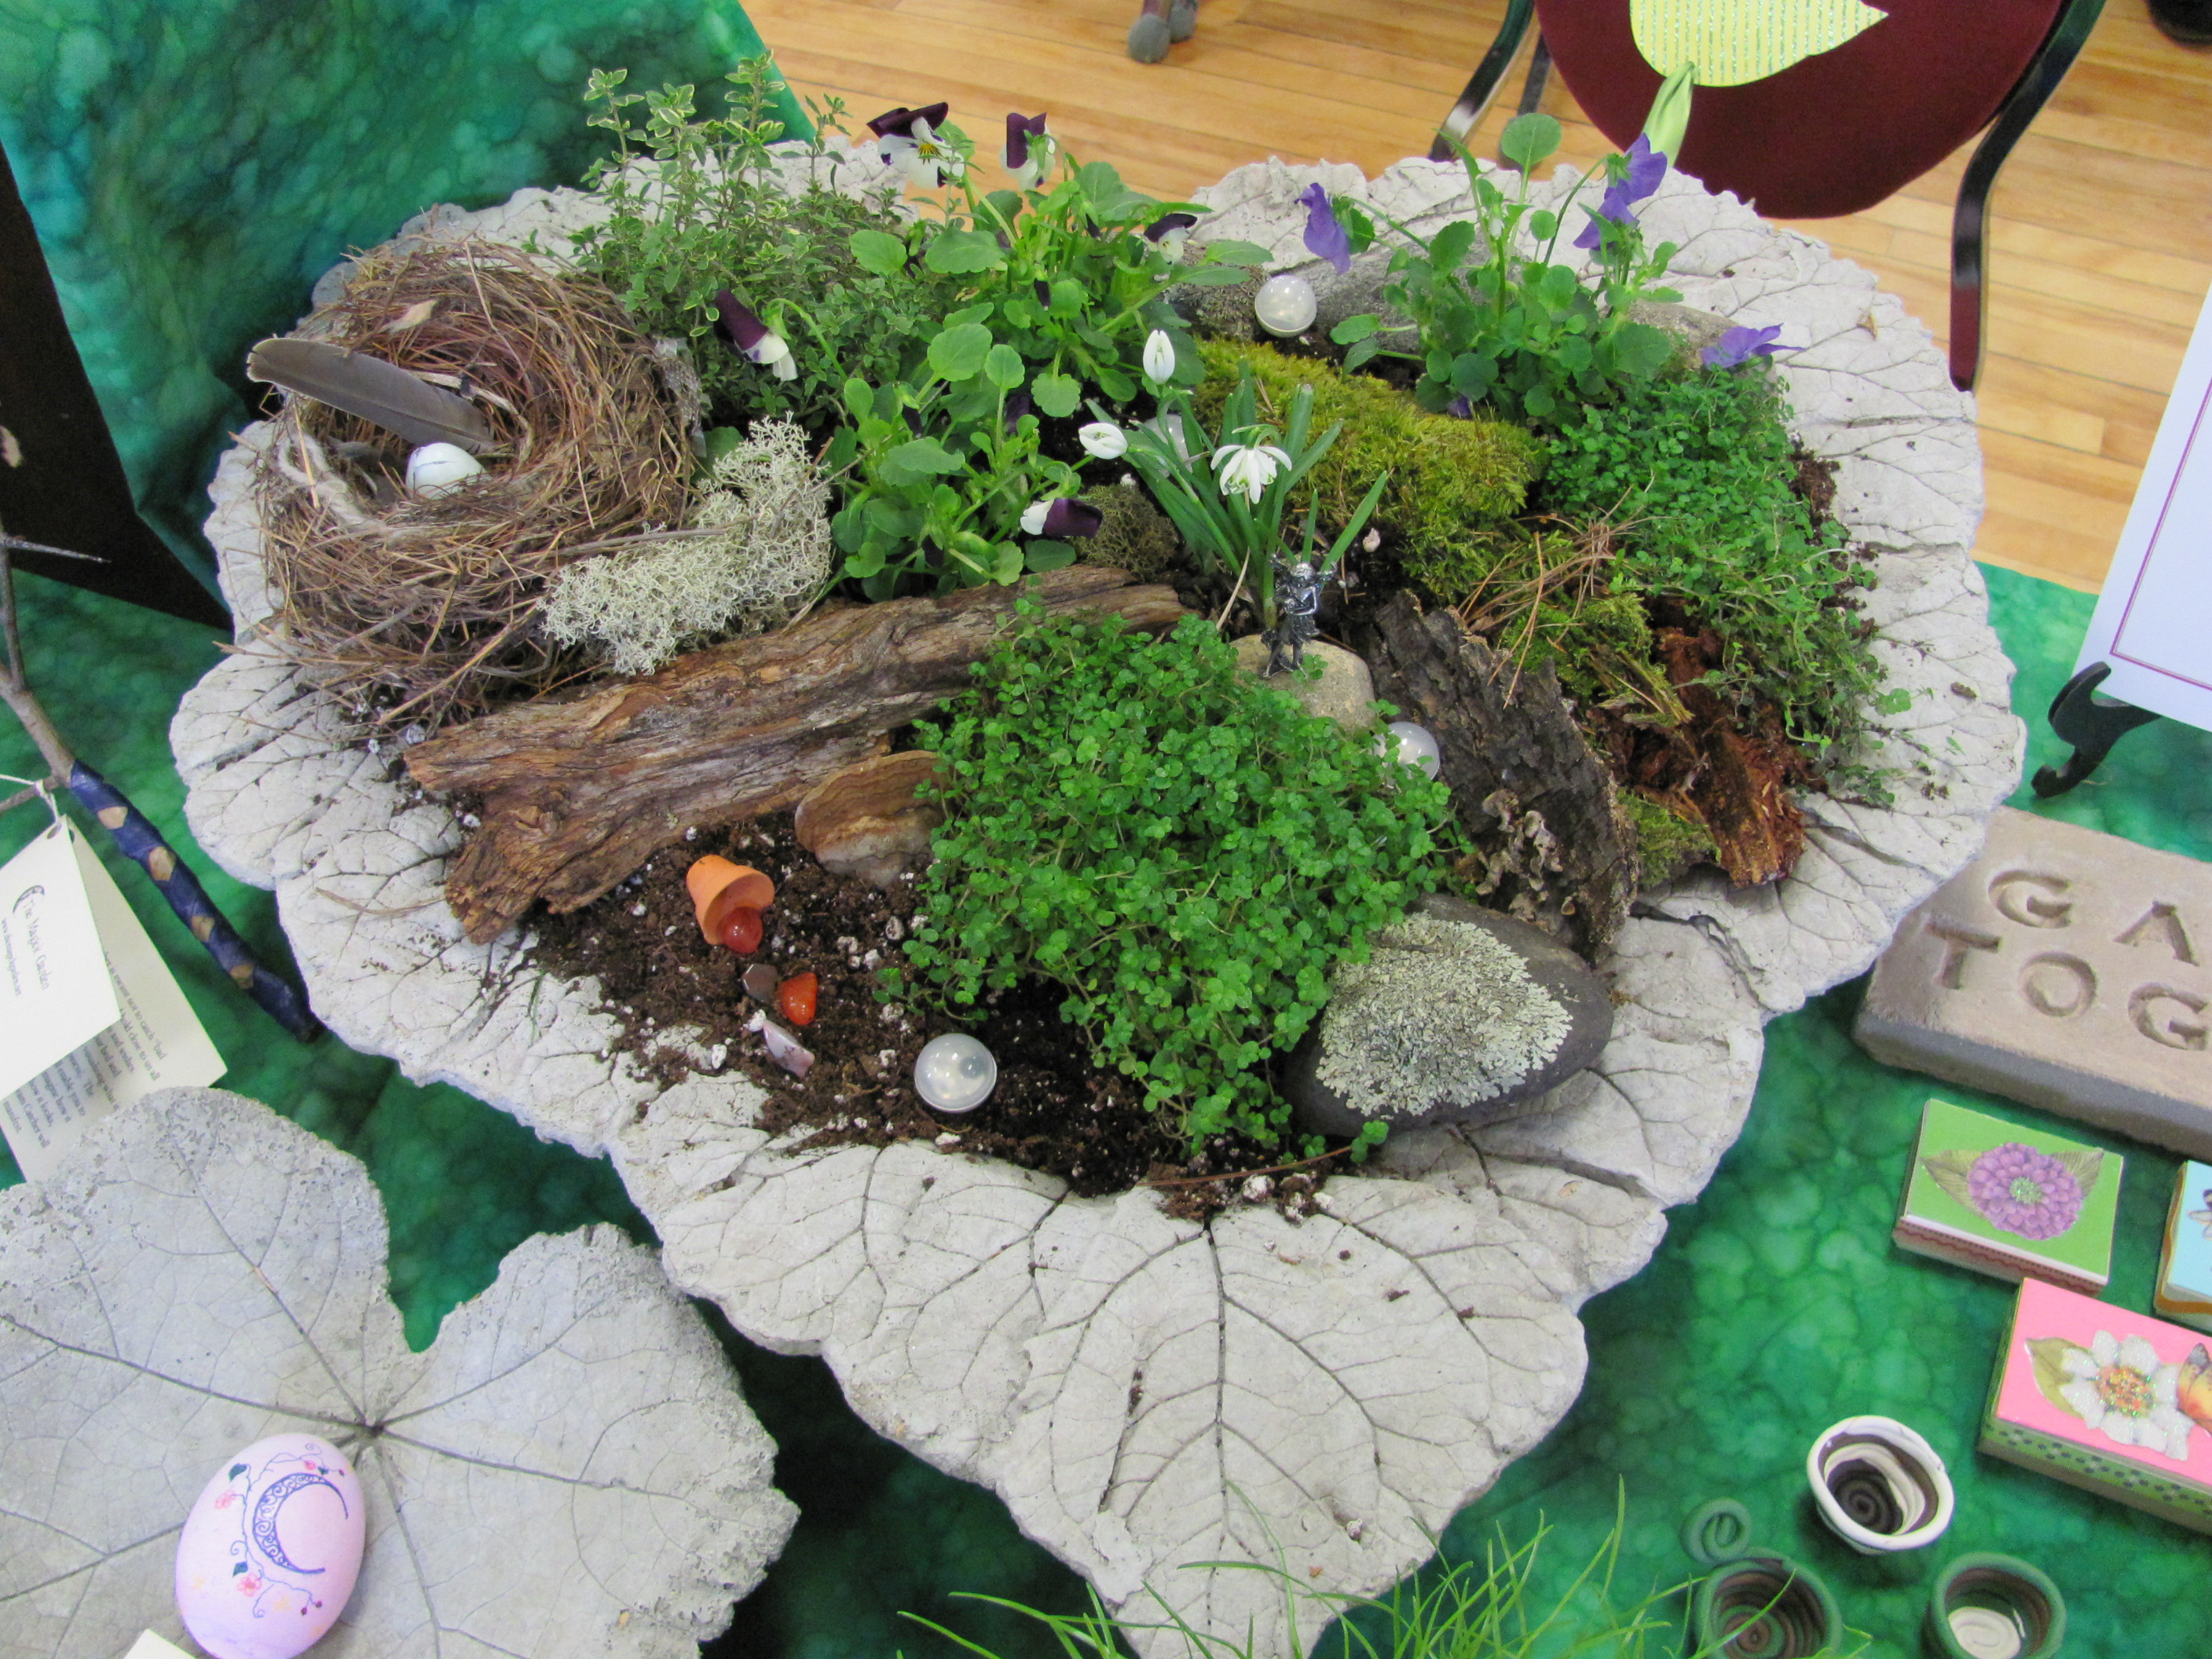 THE FAE WINGS MAKE YOUR OWN FAERY GARDEN